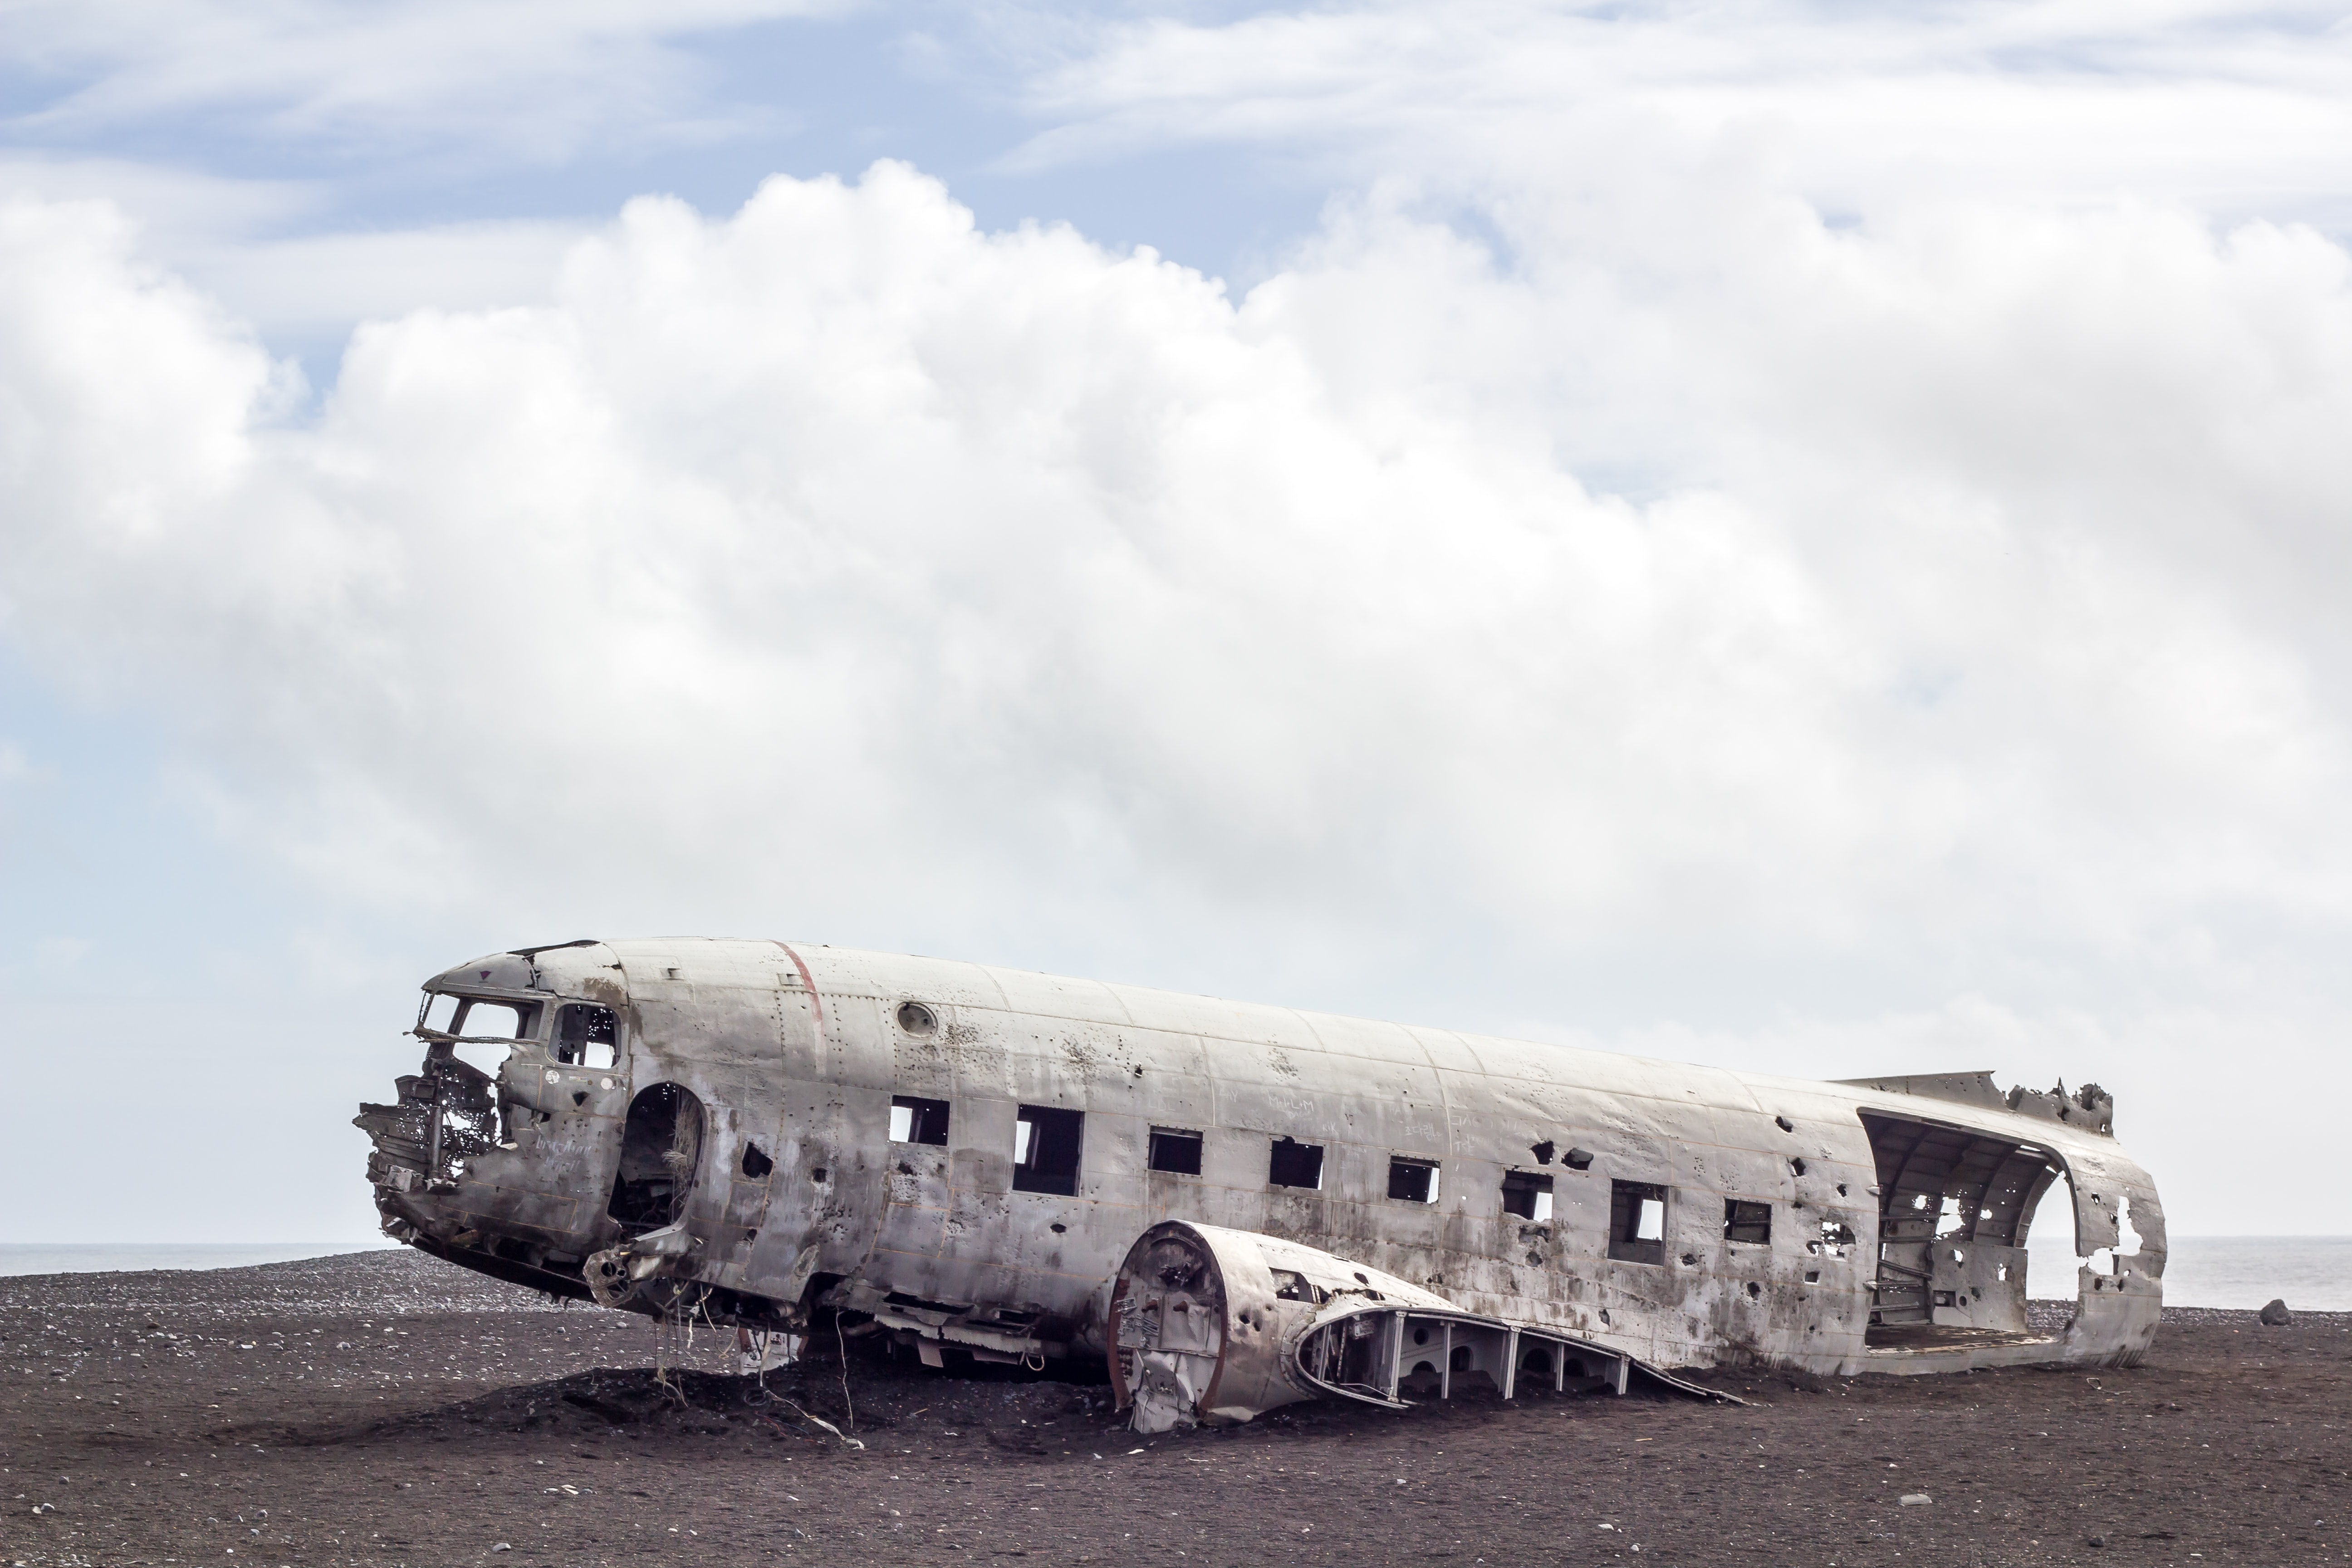 Abandoned airplane wreckage in the desert of Solheimasandur